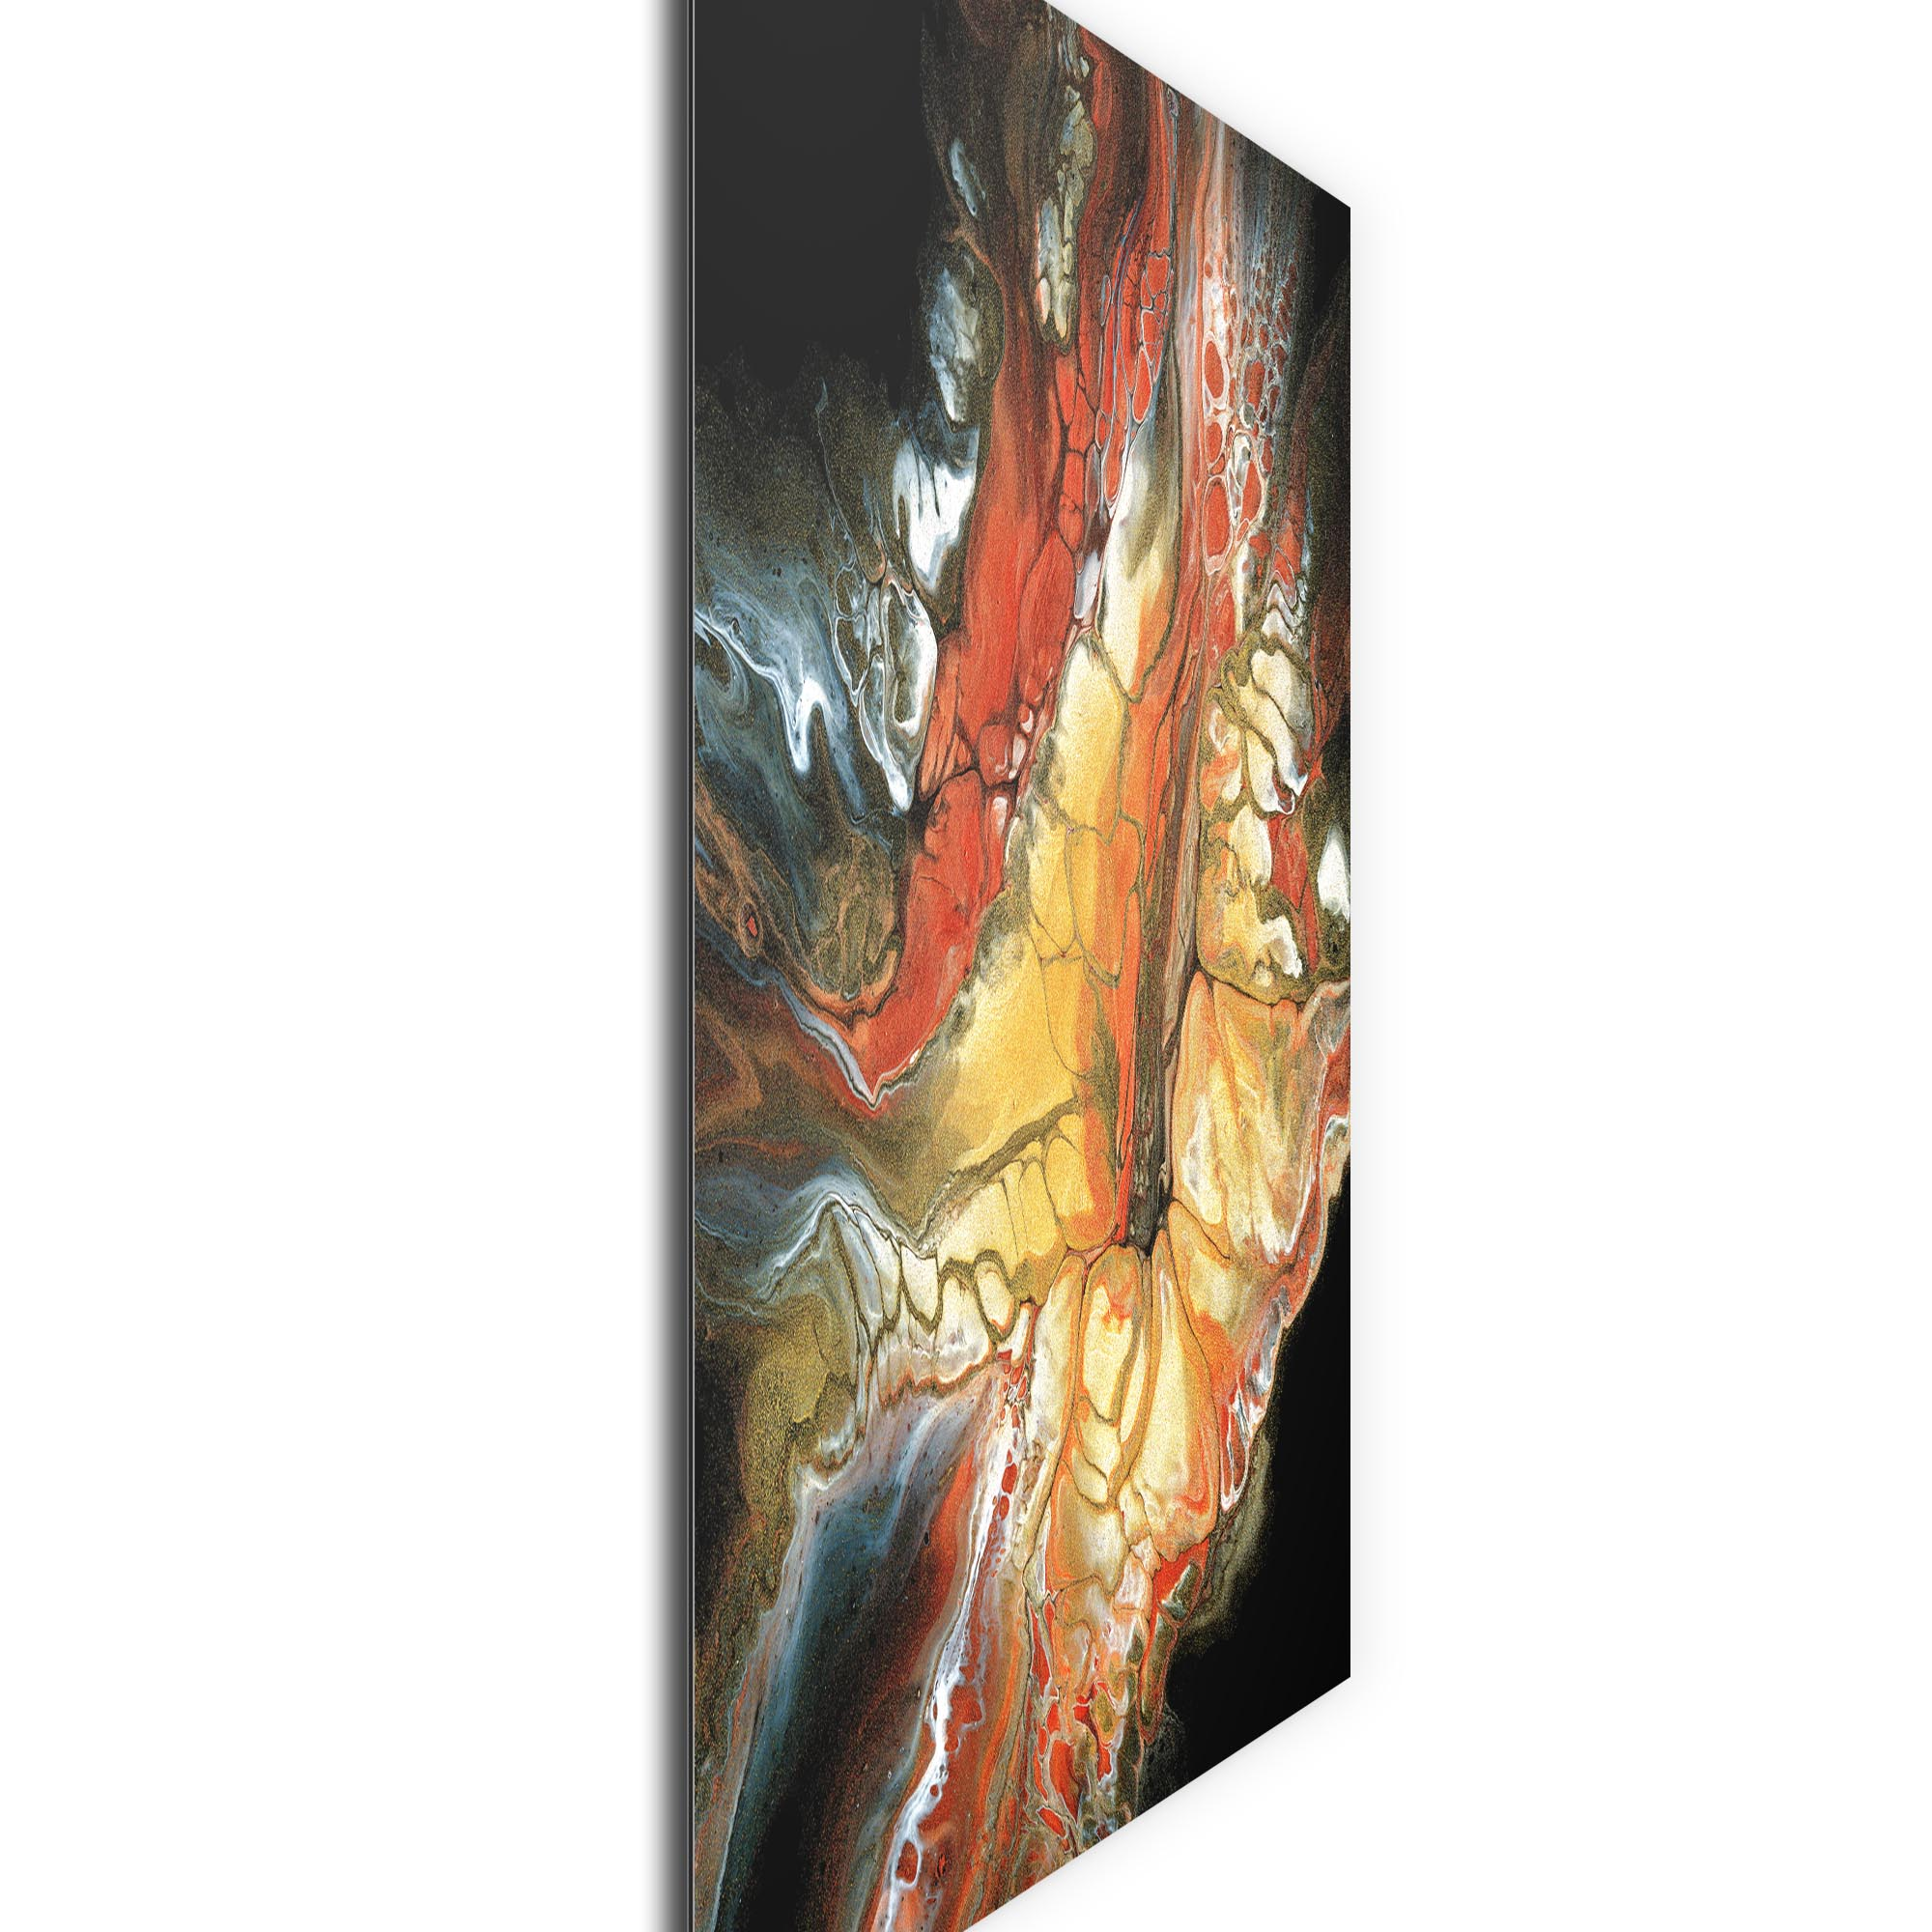 Core by Elana Reiter - Abstract Wall Art, Modern Home Decor (36in x 36in) - Image 2